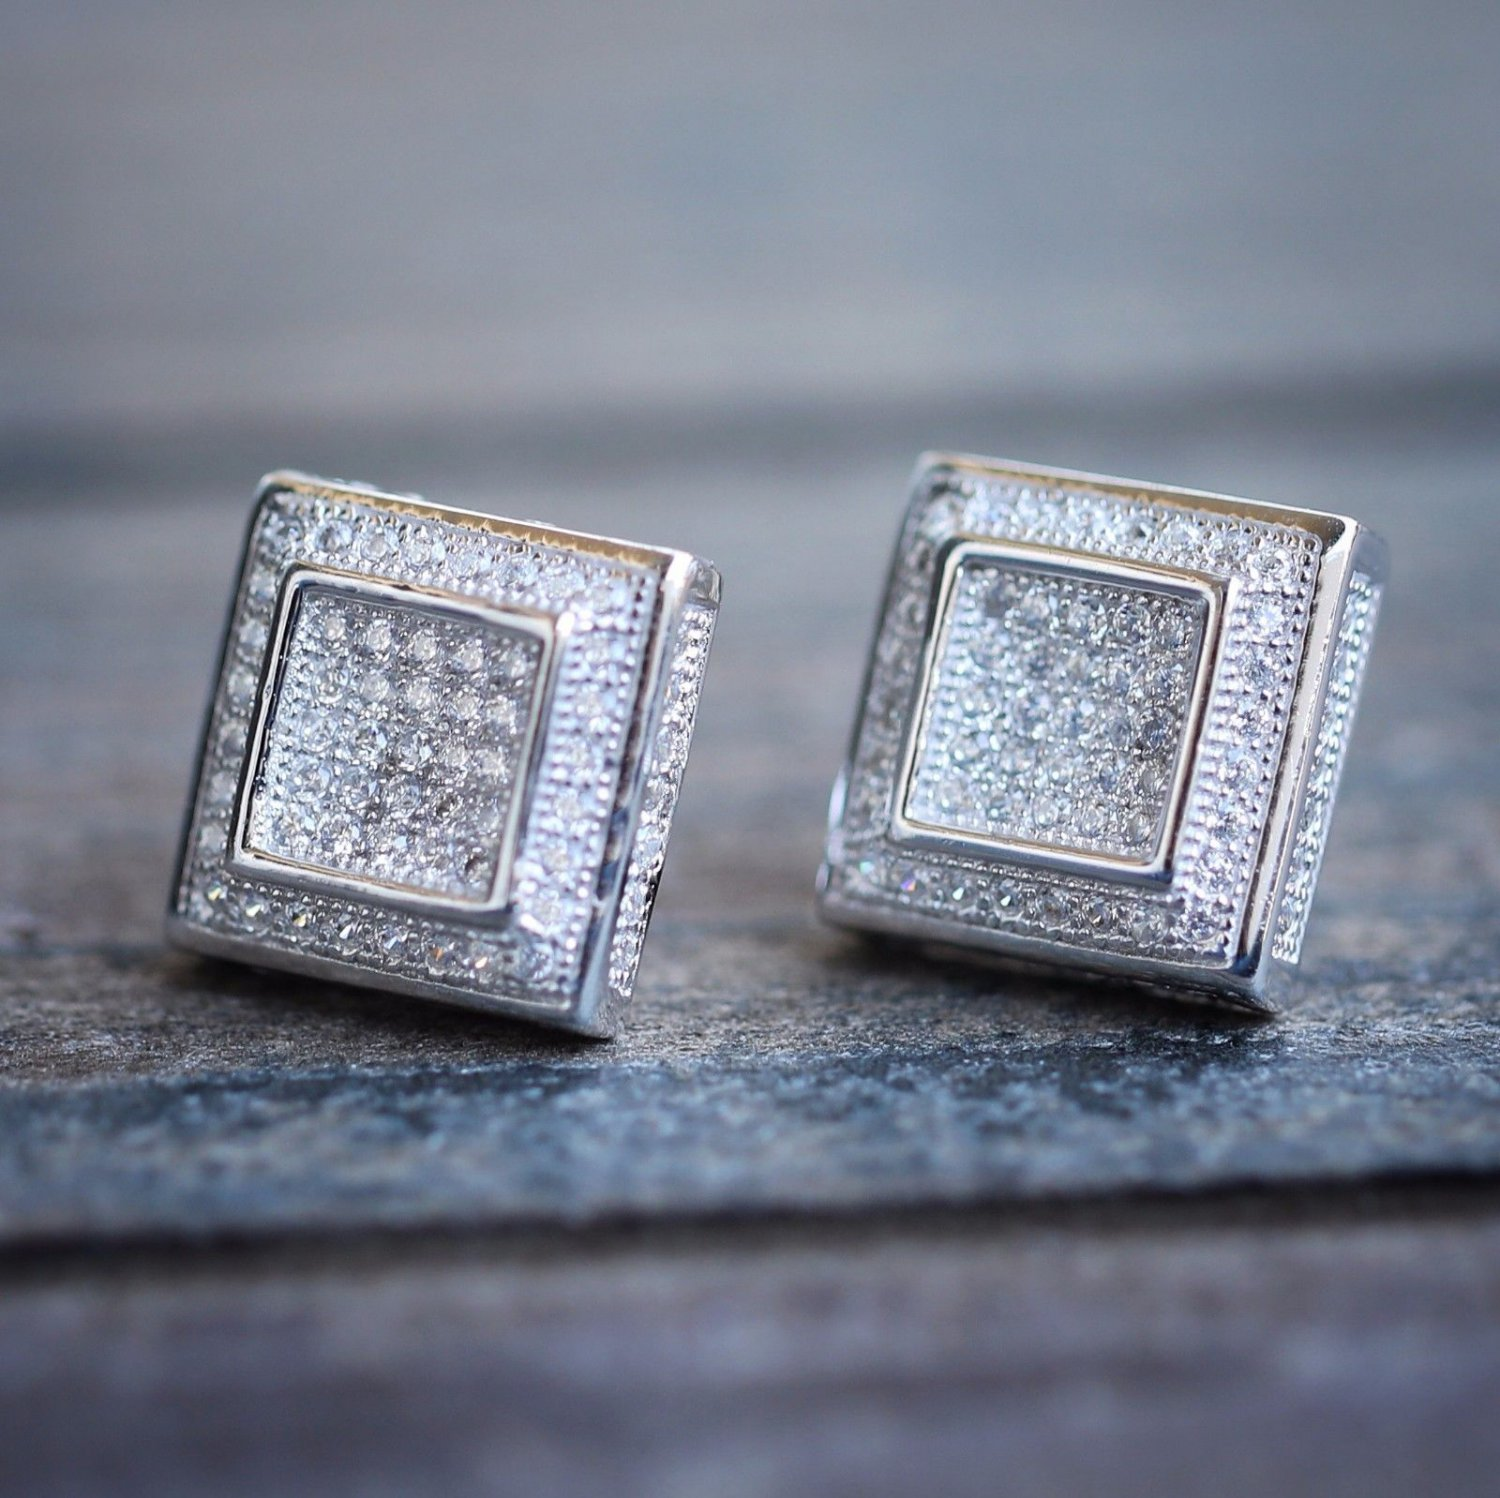 Micro pave square cz stone white gold bling bling hip hop earrings